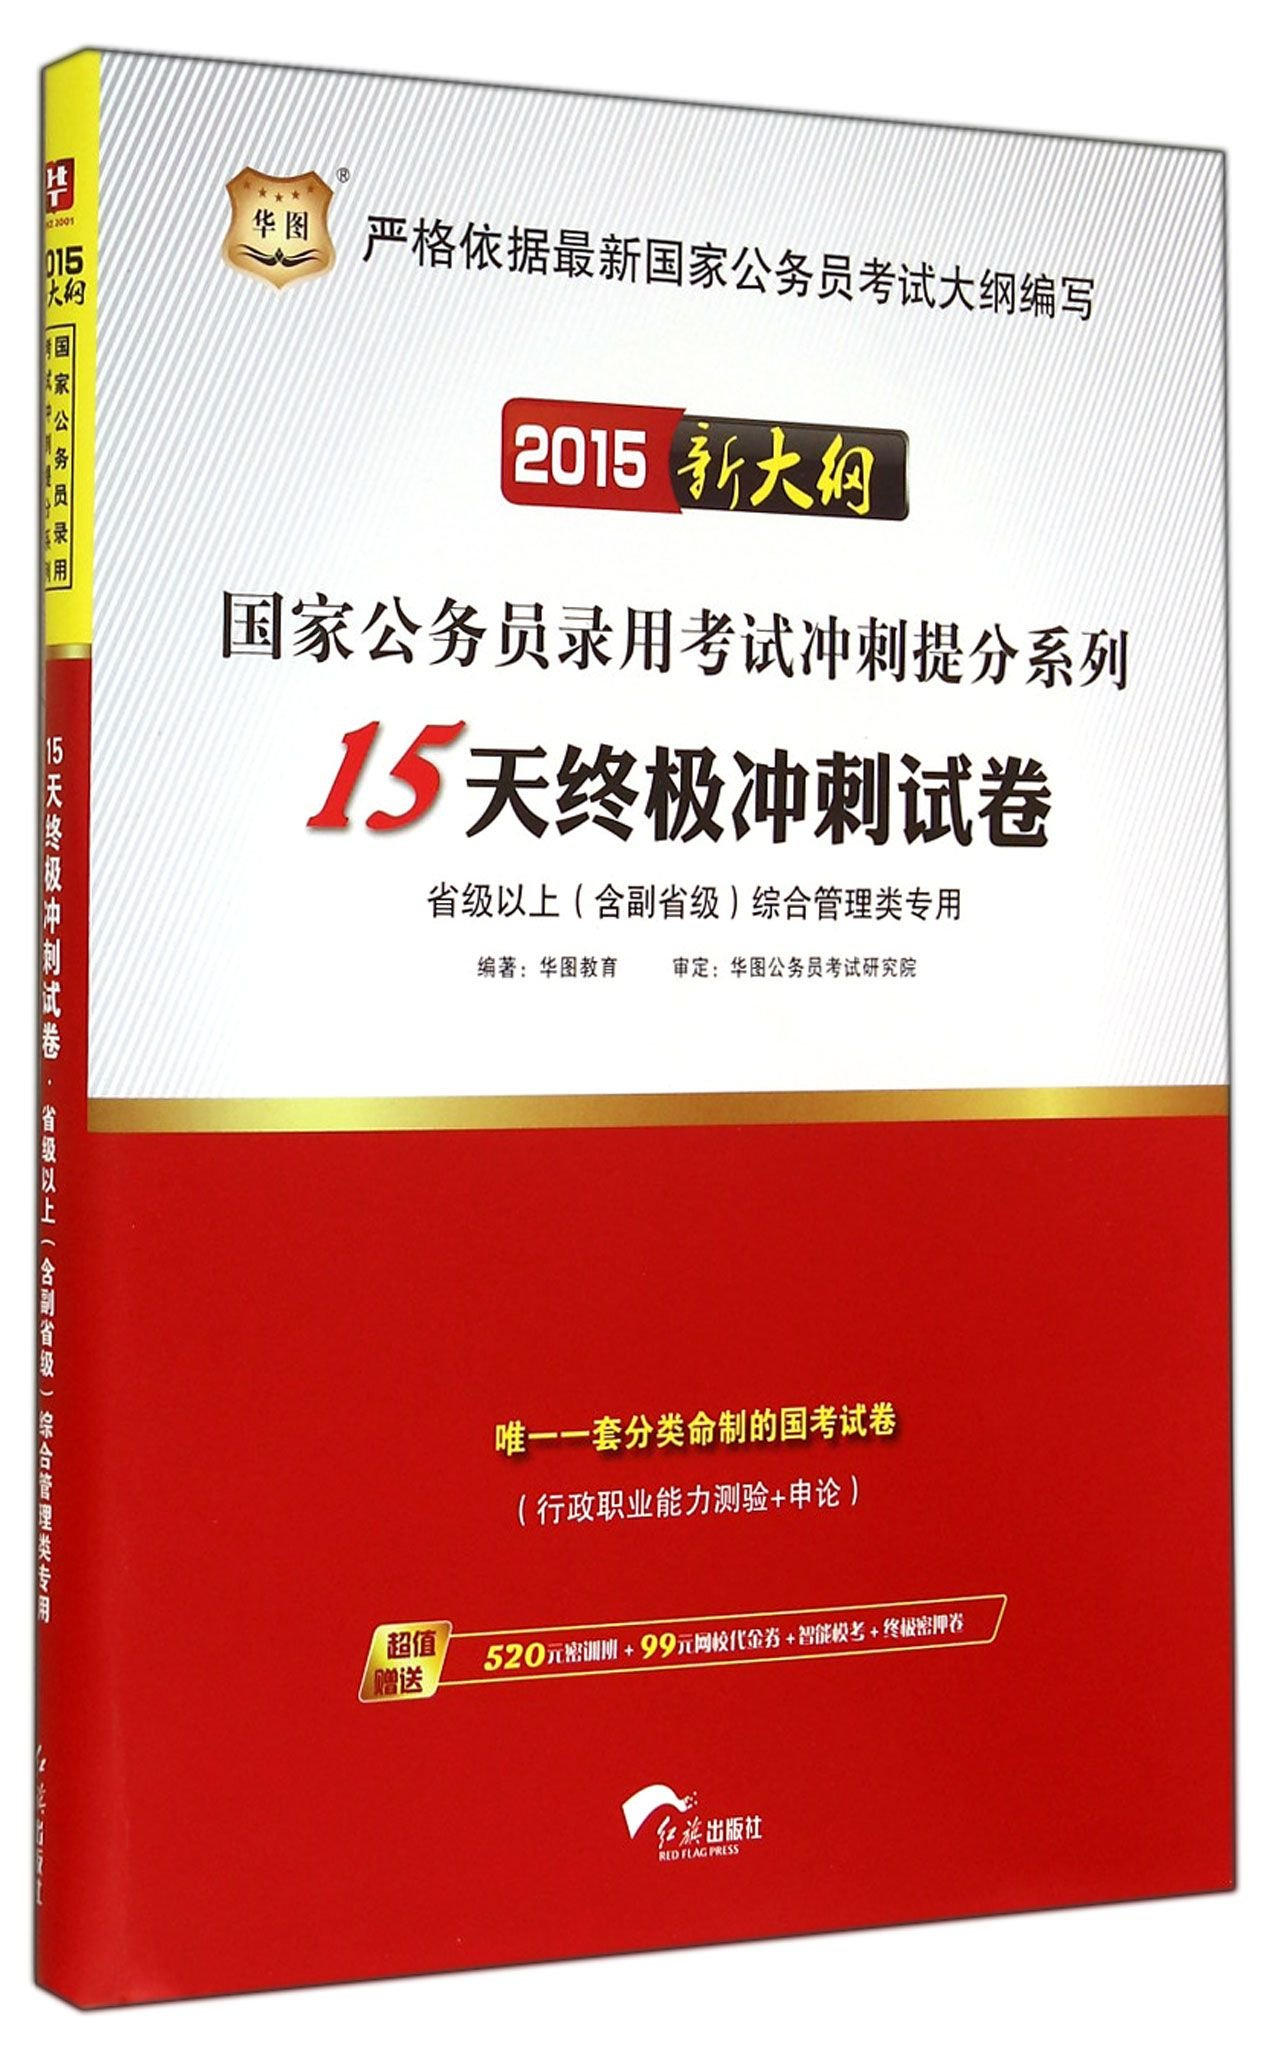 Download 2015 national test new outline more than 15 days sprint provincial papers 2015 national civil service exam books(Chinese Edition) ebook